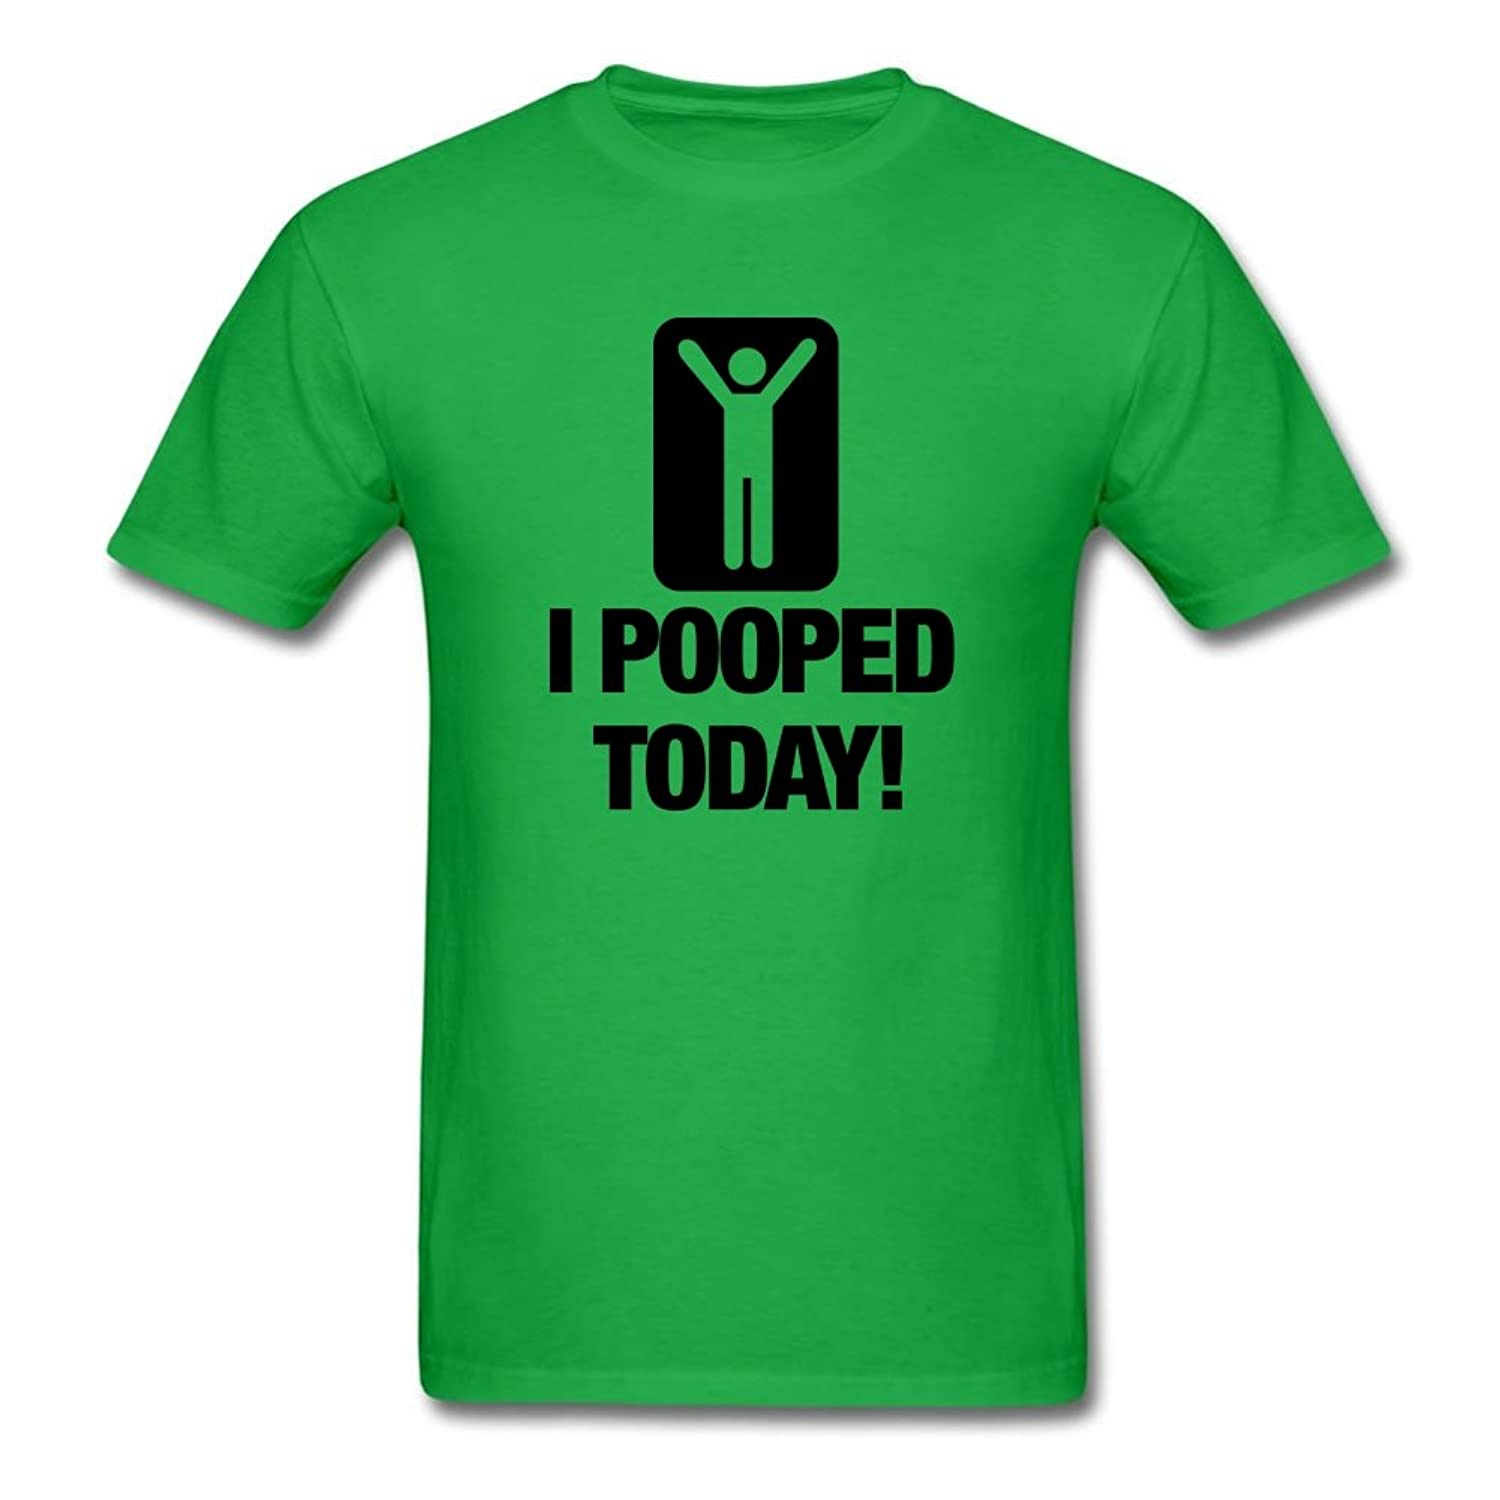 I Pooped Today Funny Graphic T-Shirt